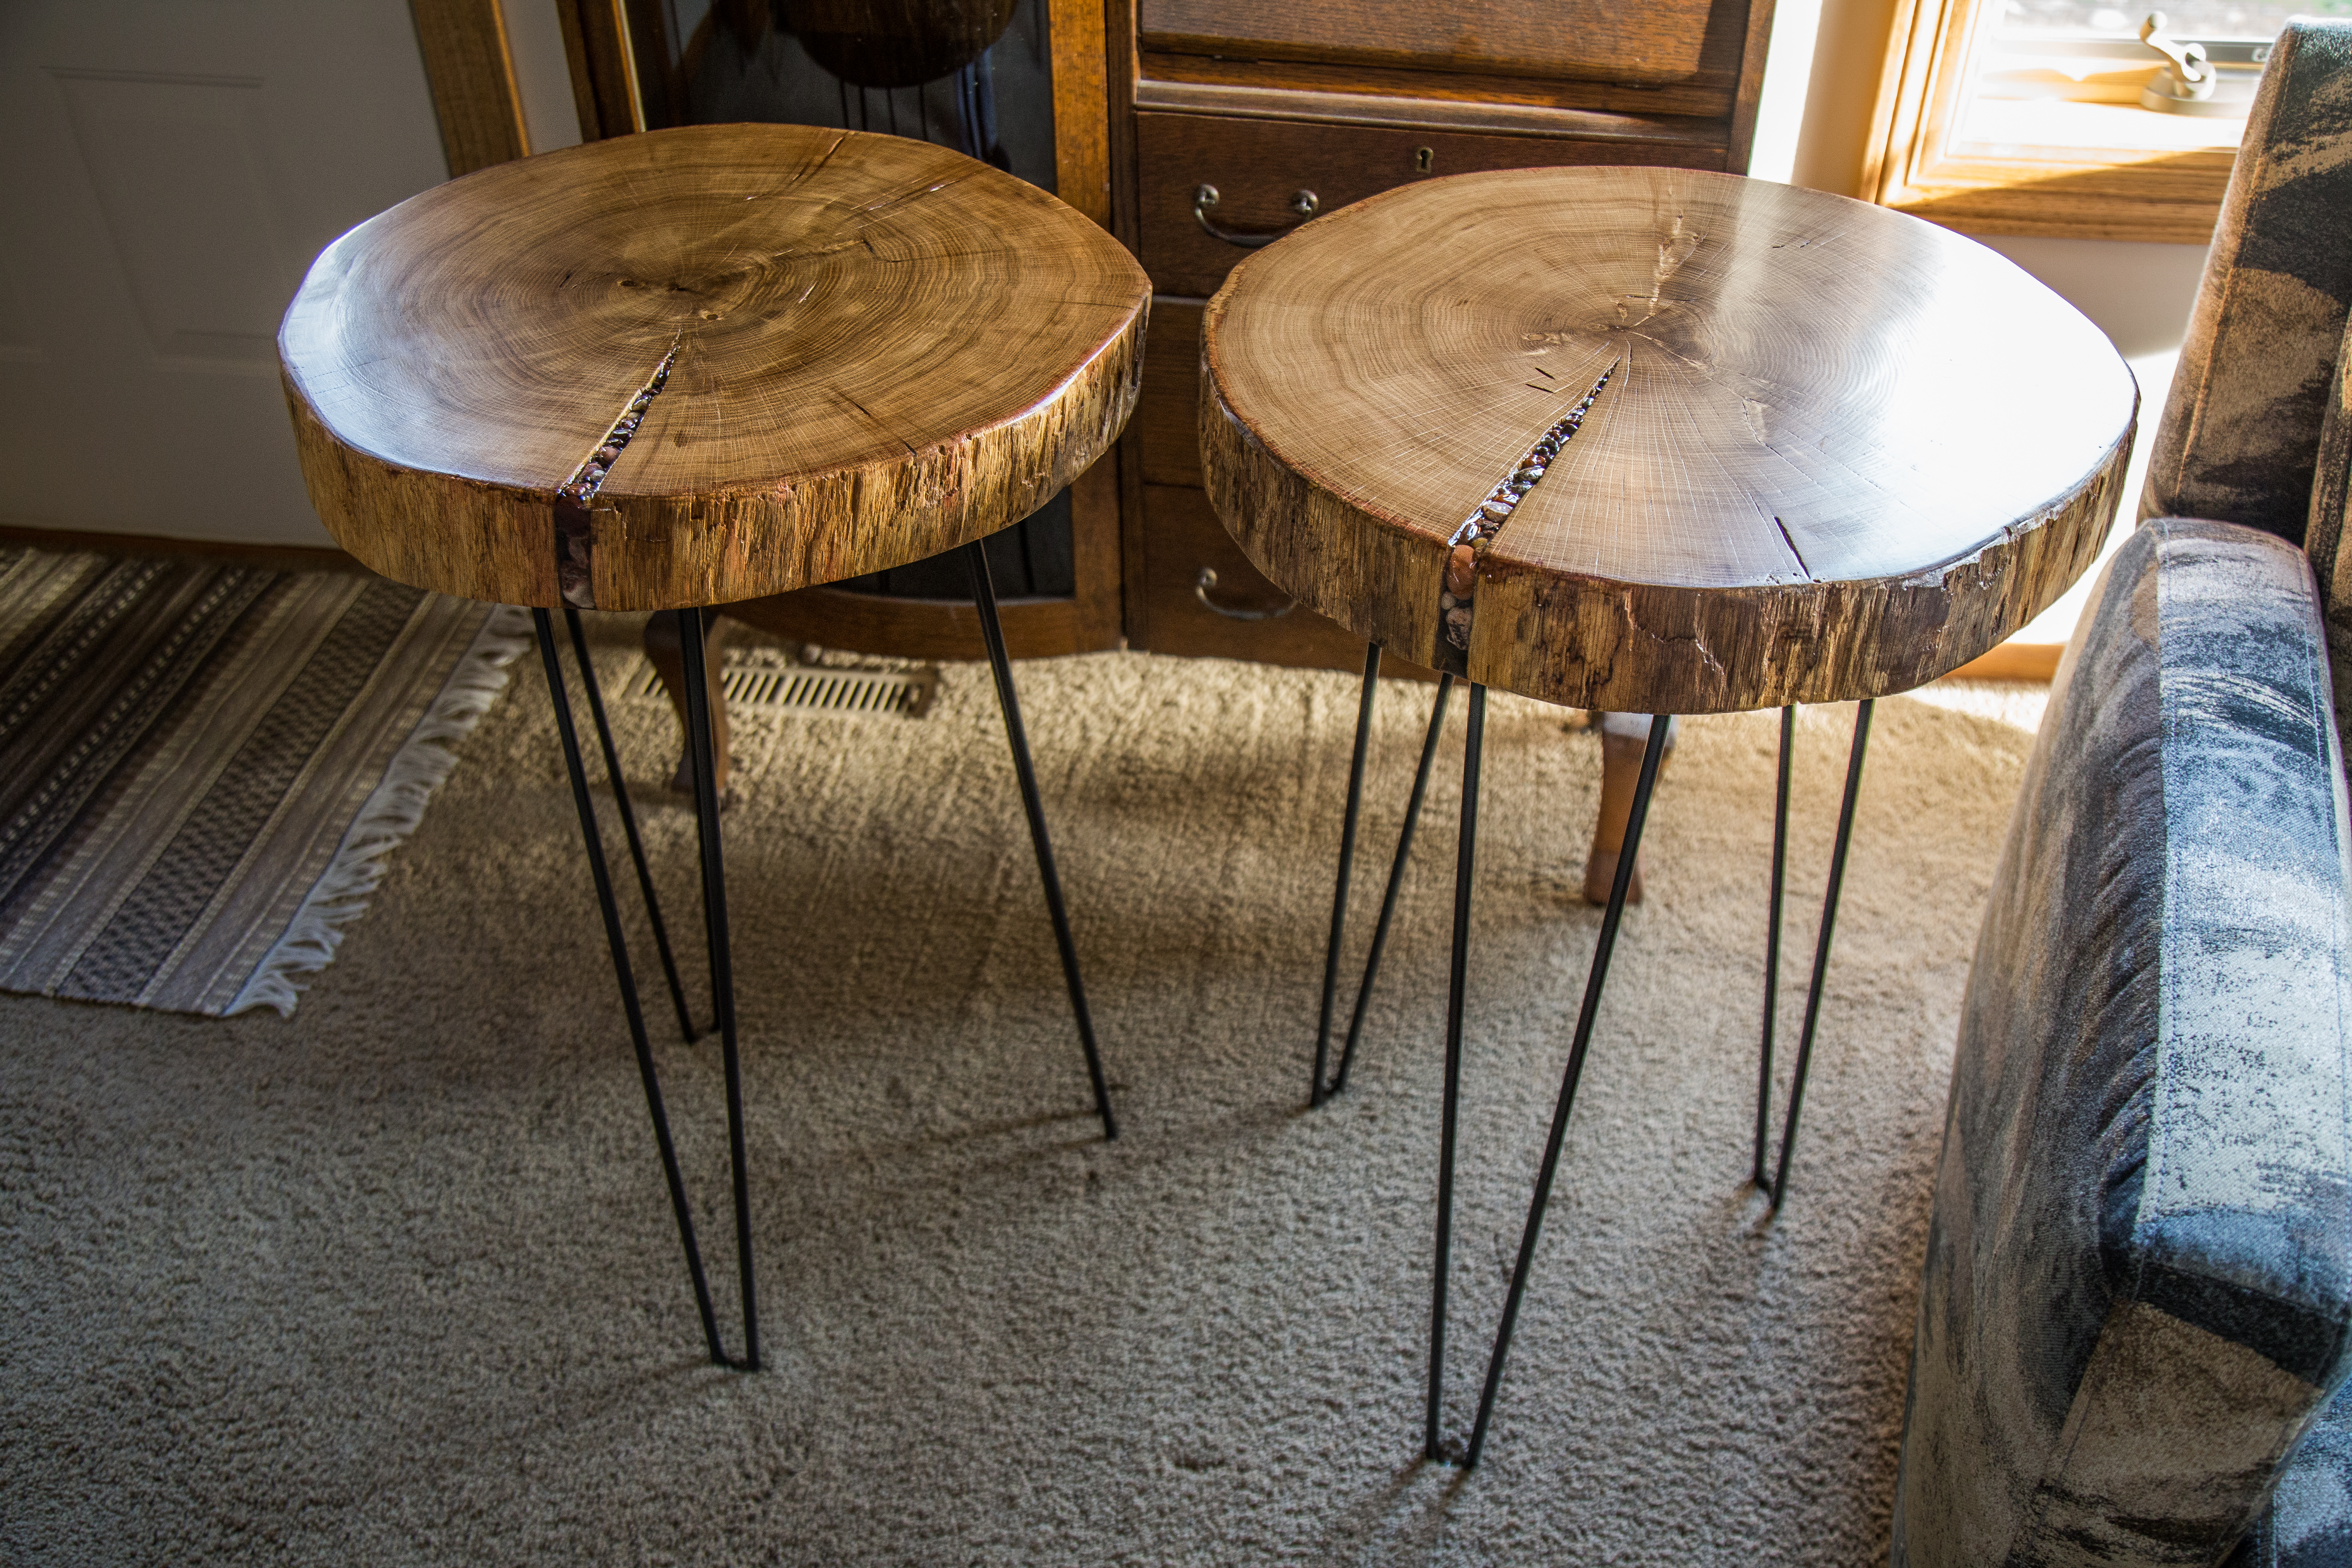 Delightful Oak Slab End Tables With Inlaid Lake Superior Agate And Rock